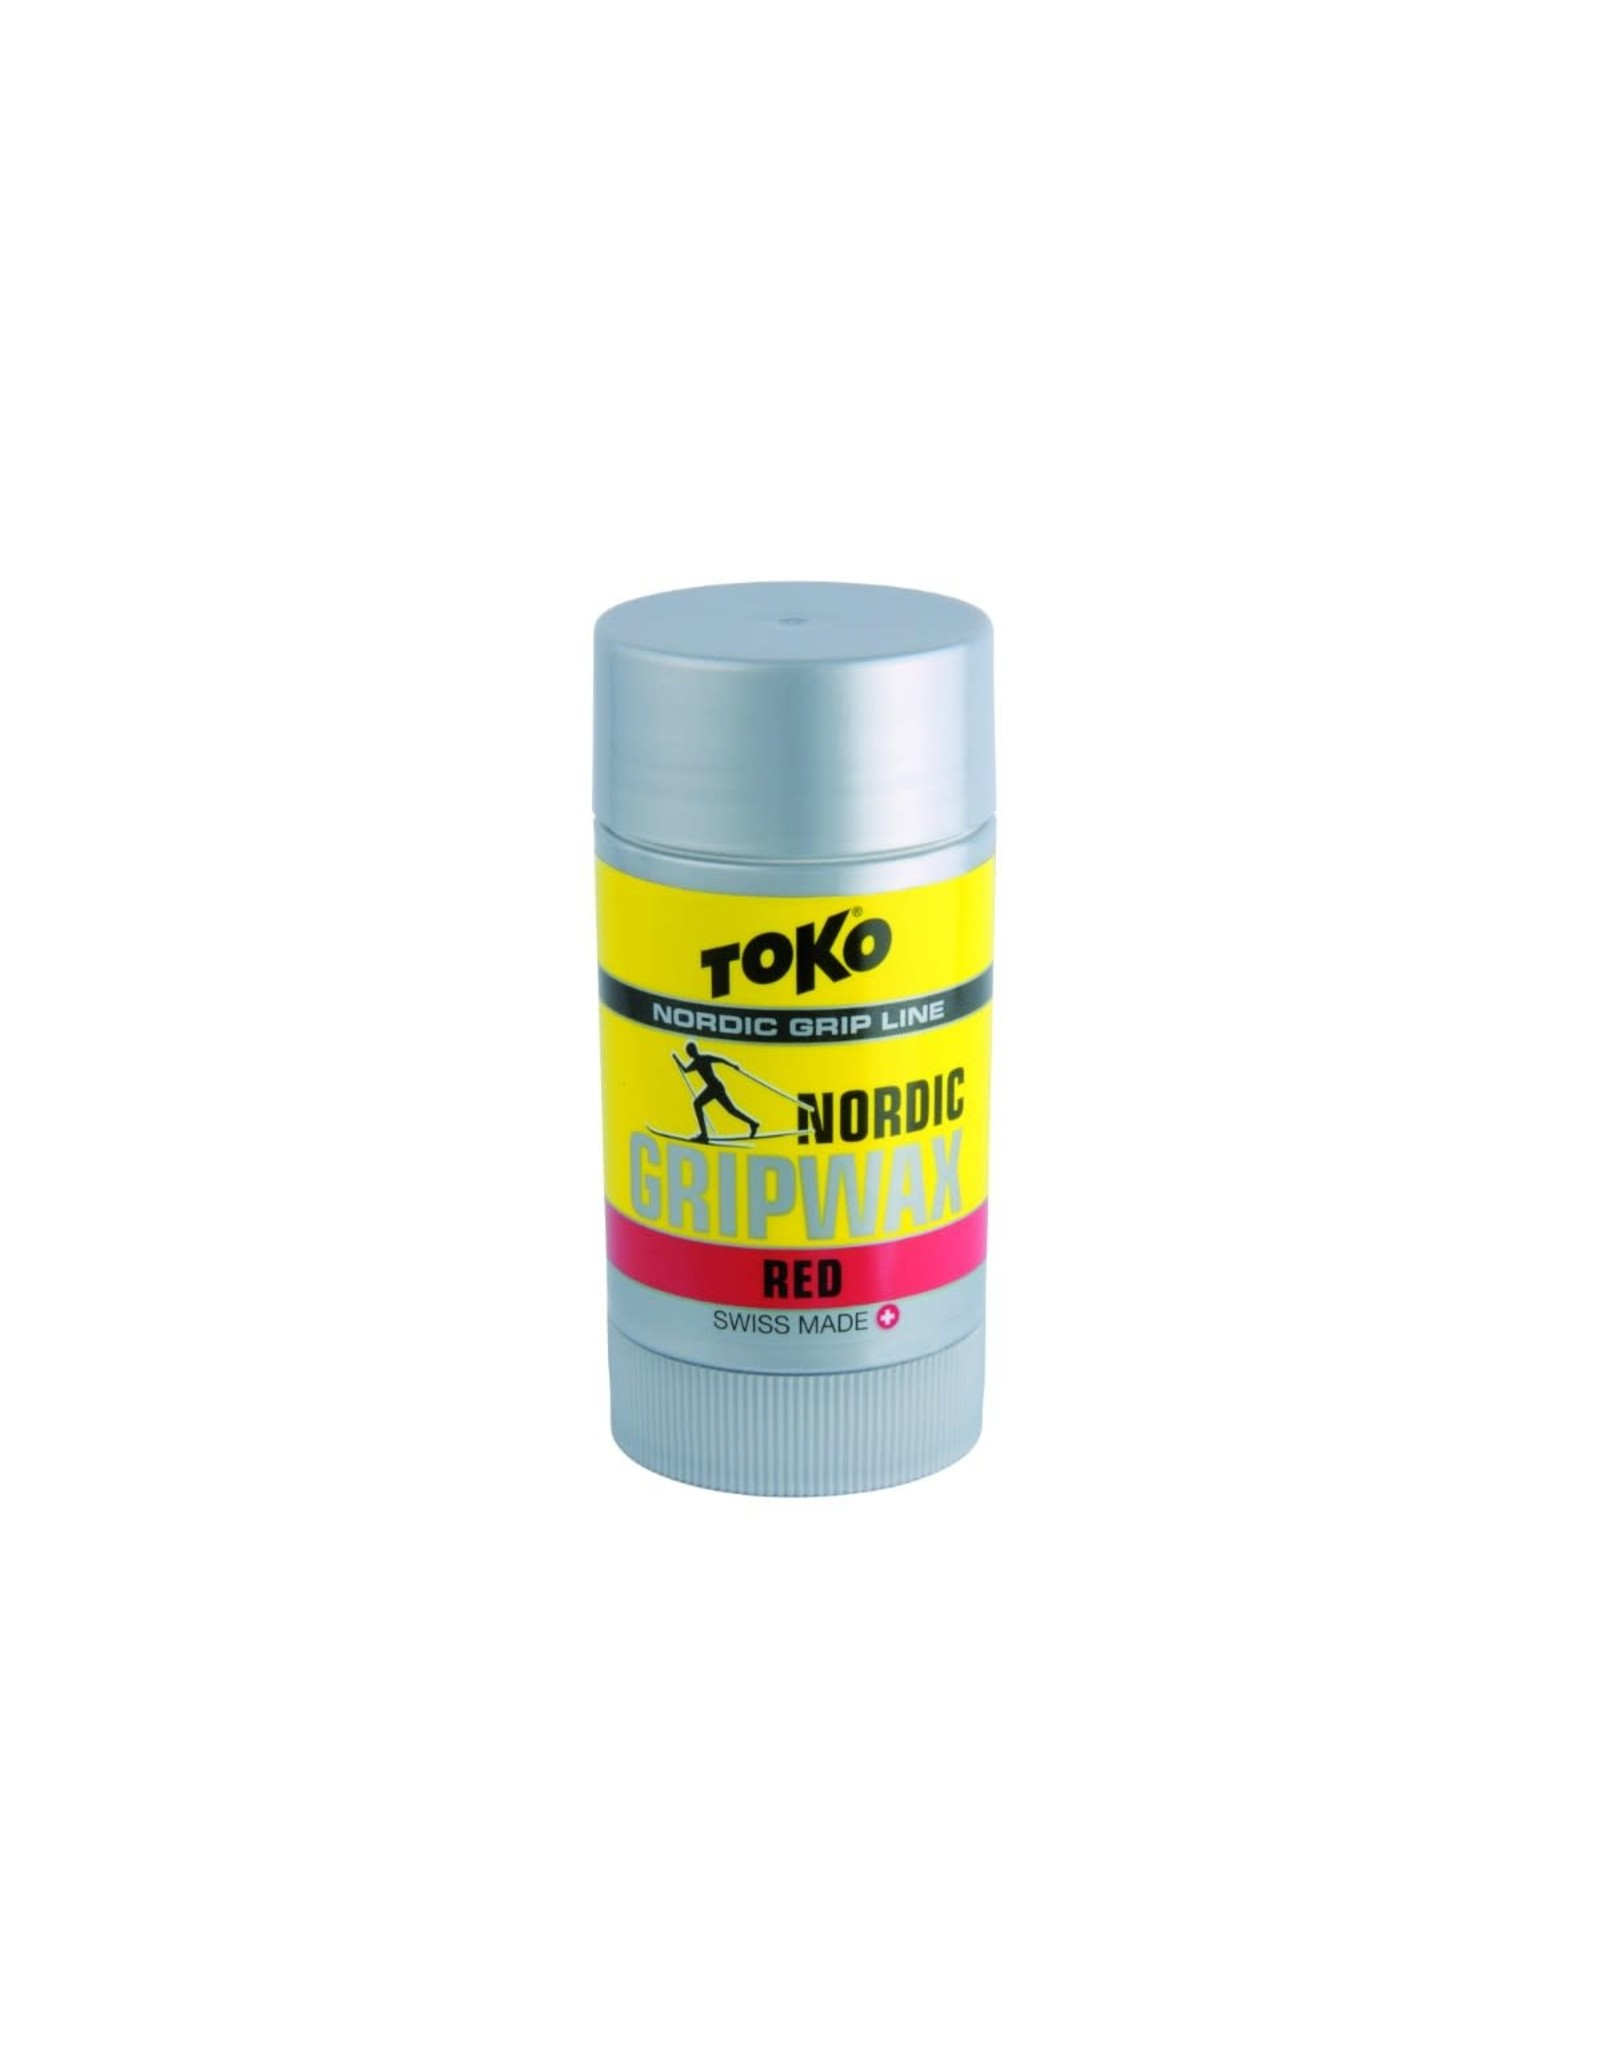 Toko Toko Nordic Grip Wax Red